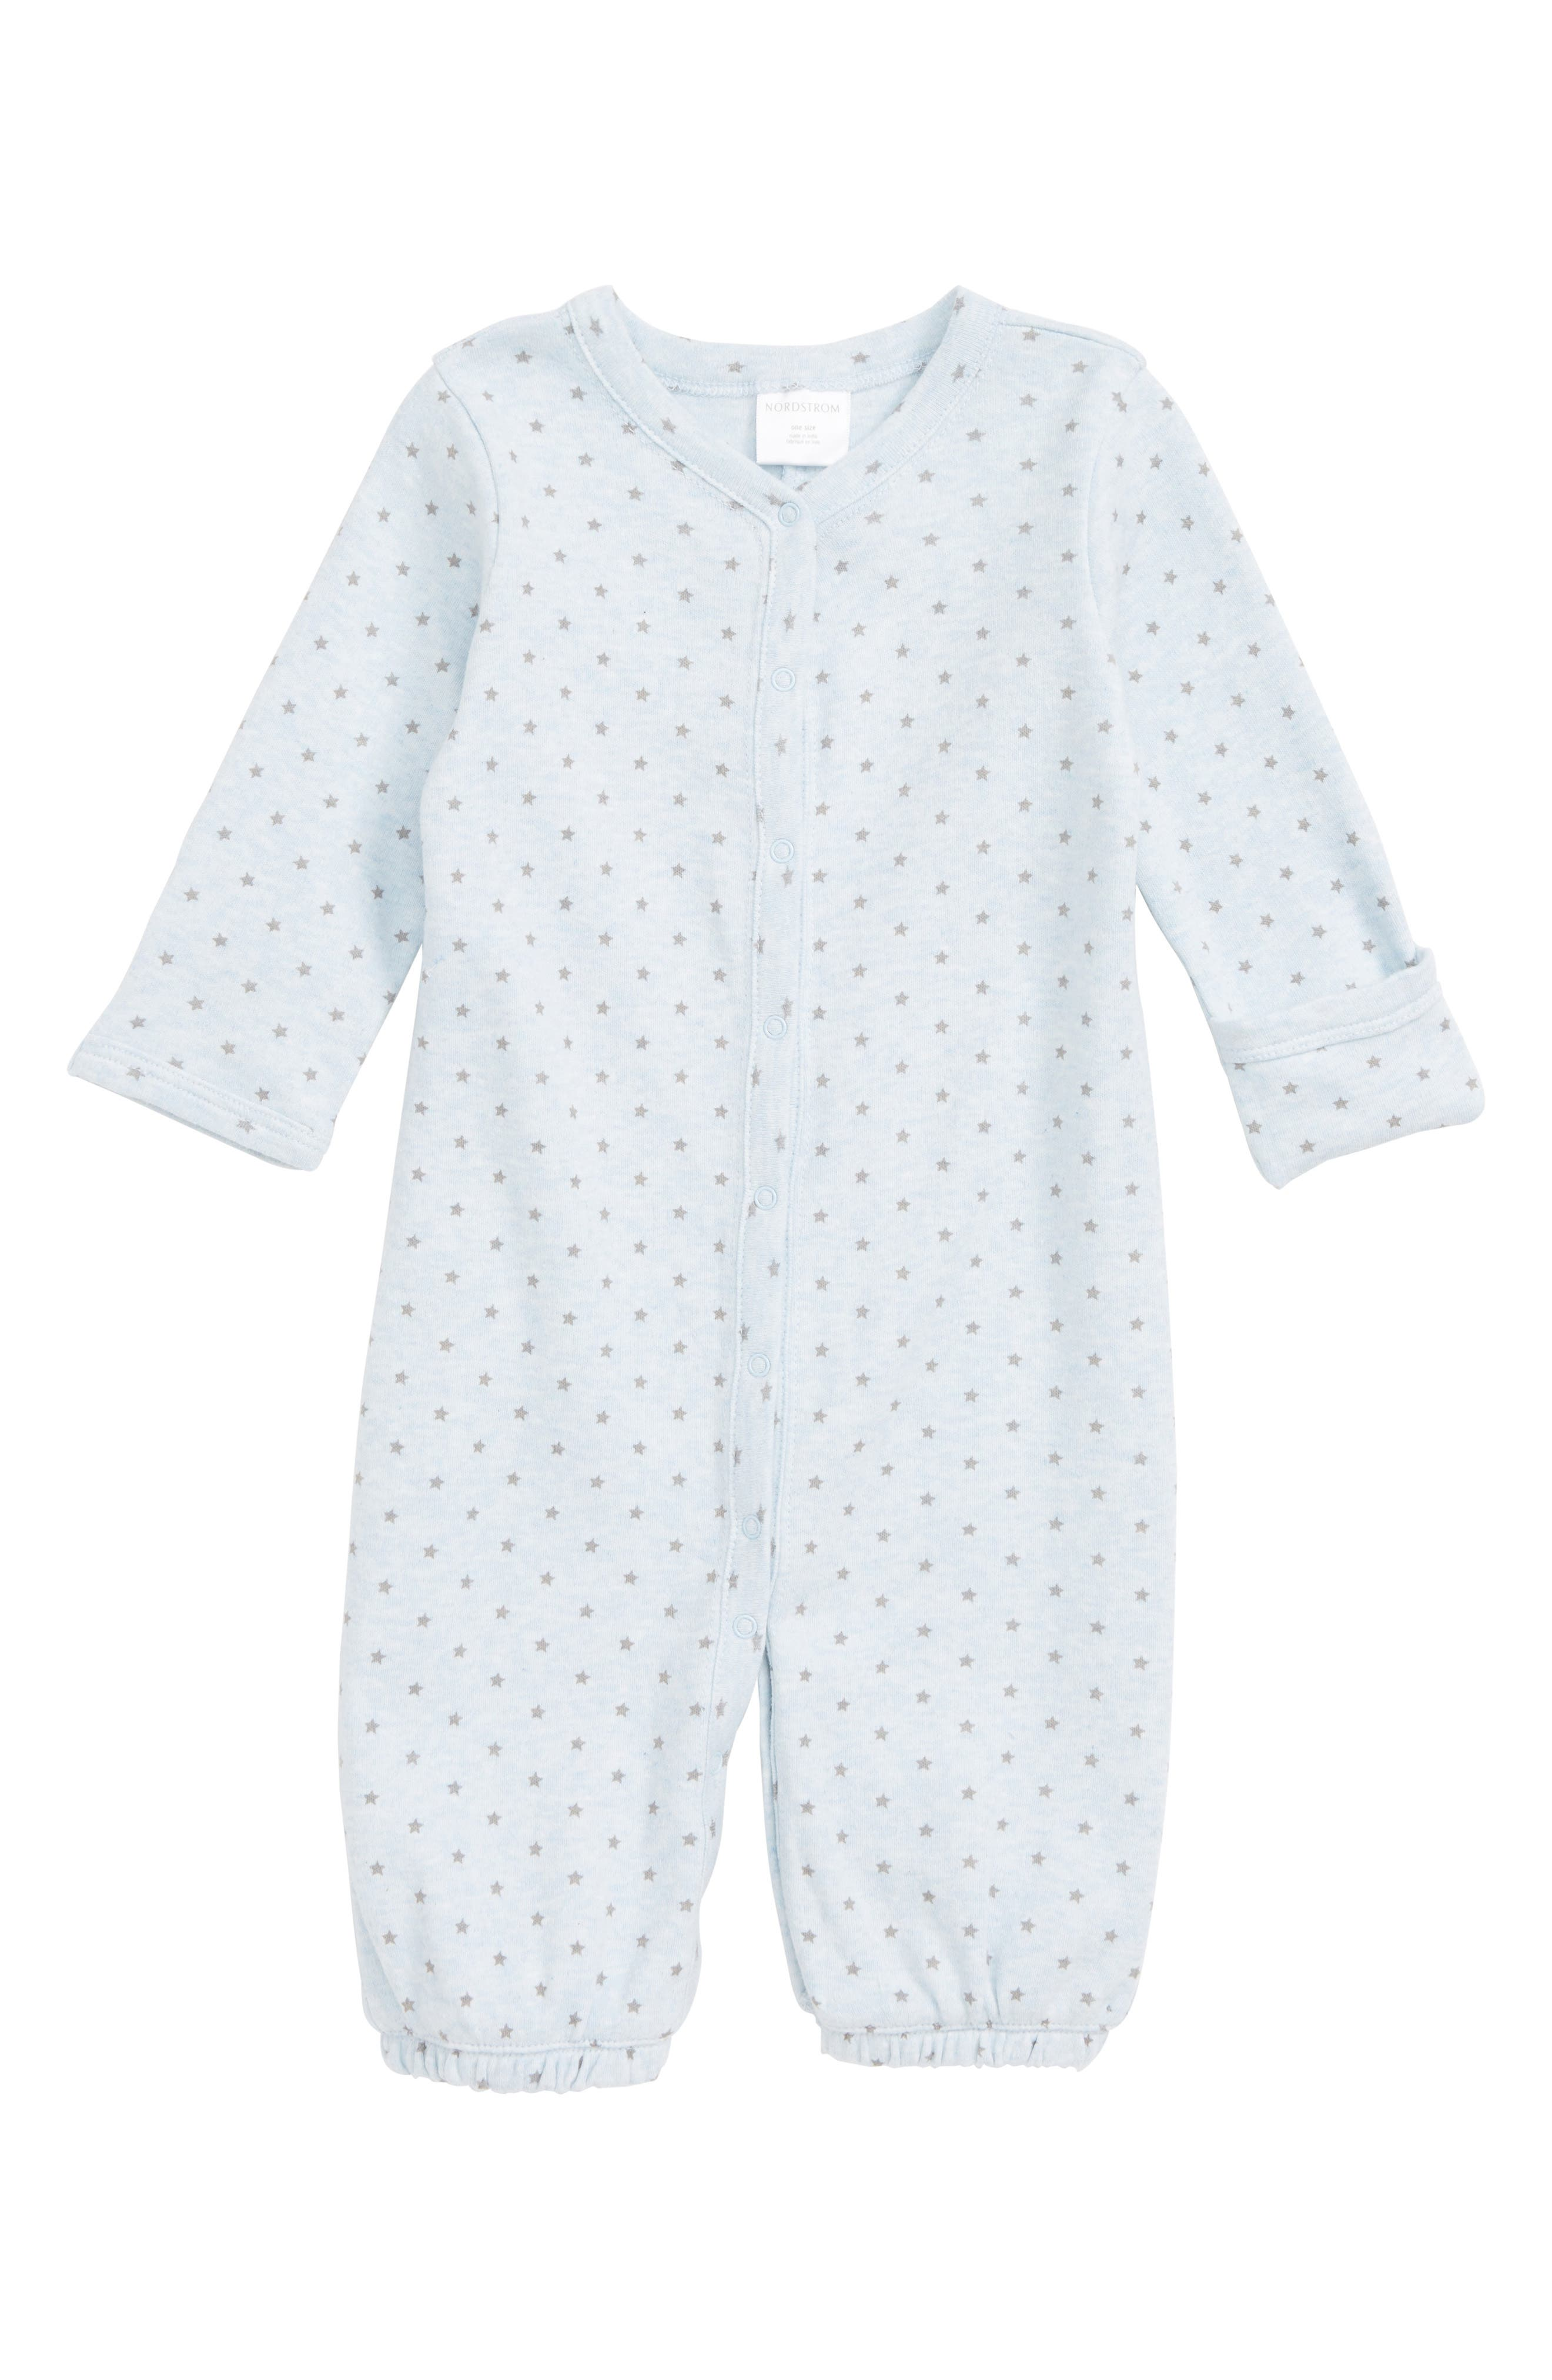 NORDSTROM BABY, Convertible Gown, Alternate thumbnail 2, color, BLUE PRECIOUS HEATHER STARS